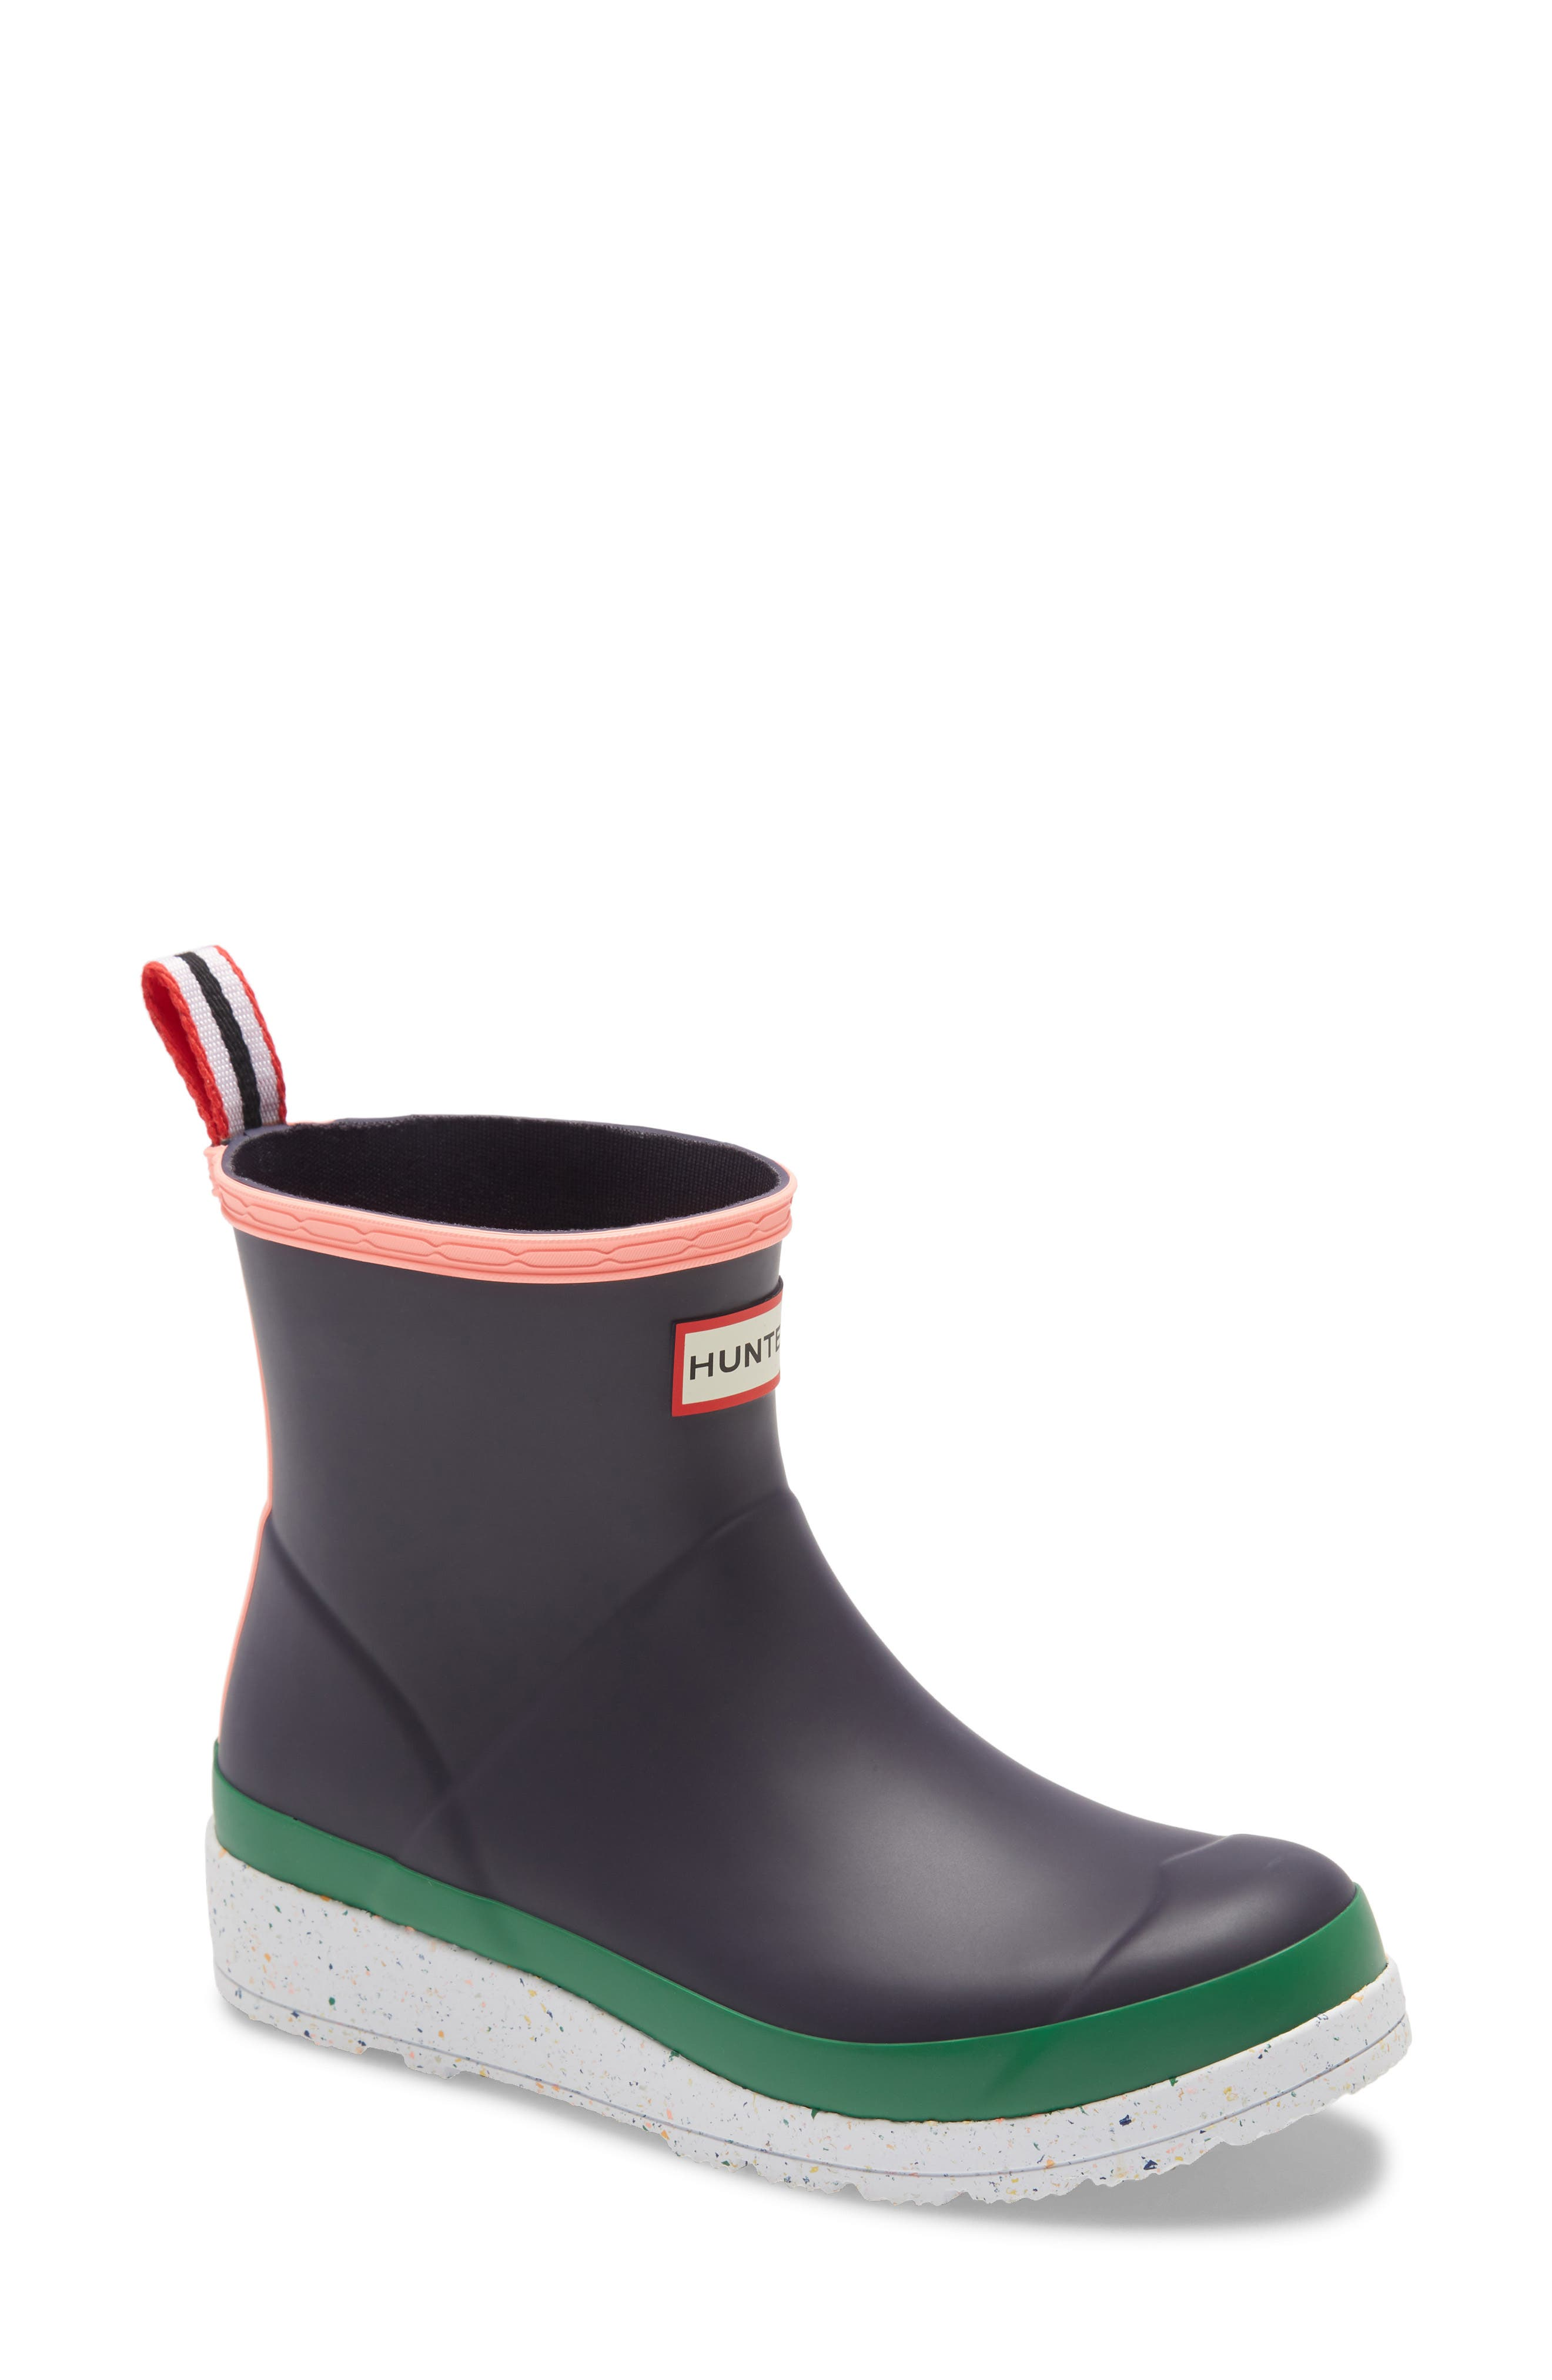 A speckled platform makes more than a splash on a rubber rain boot set on a grippy lugged sole-for traction on the street and all across your rainy-day wardrobe. Style Name: Hunter Original Play Speckled Platform Waterproof Rain Boot (Women). Style Number: 6020802. Available in stores.